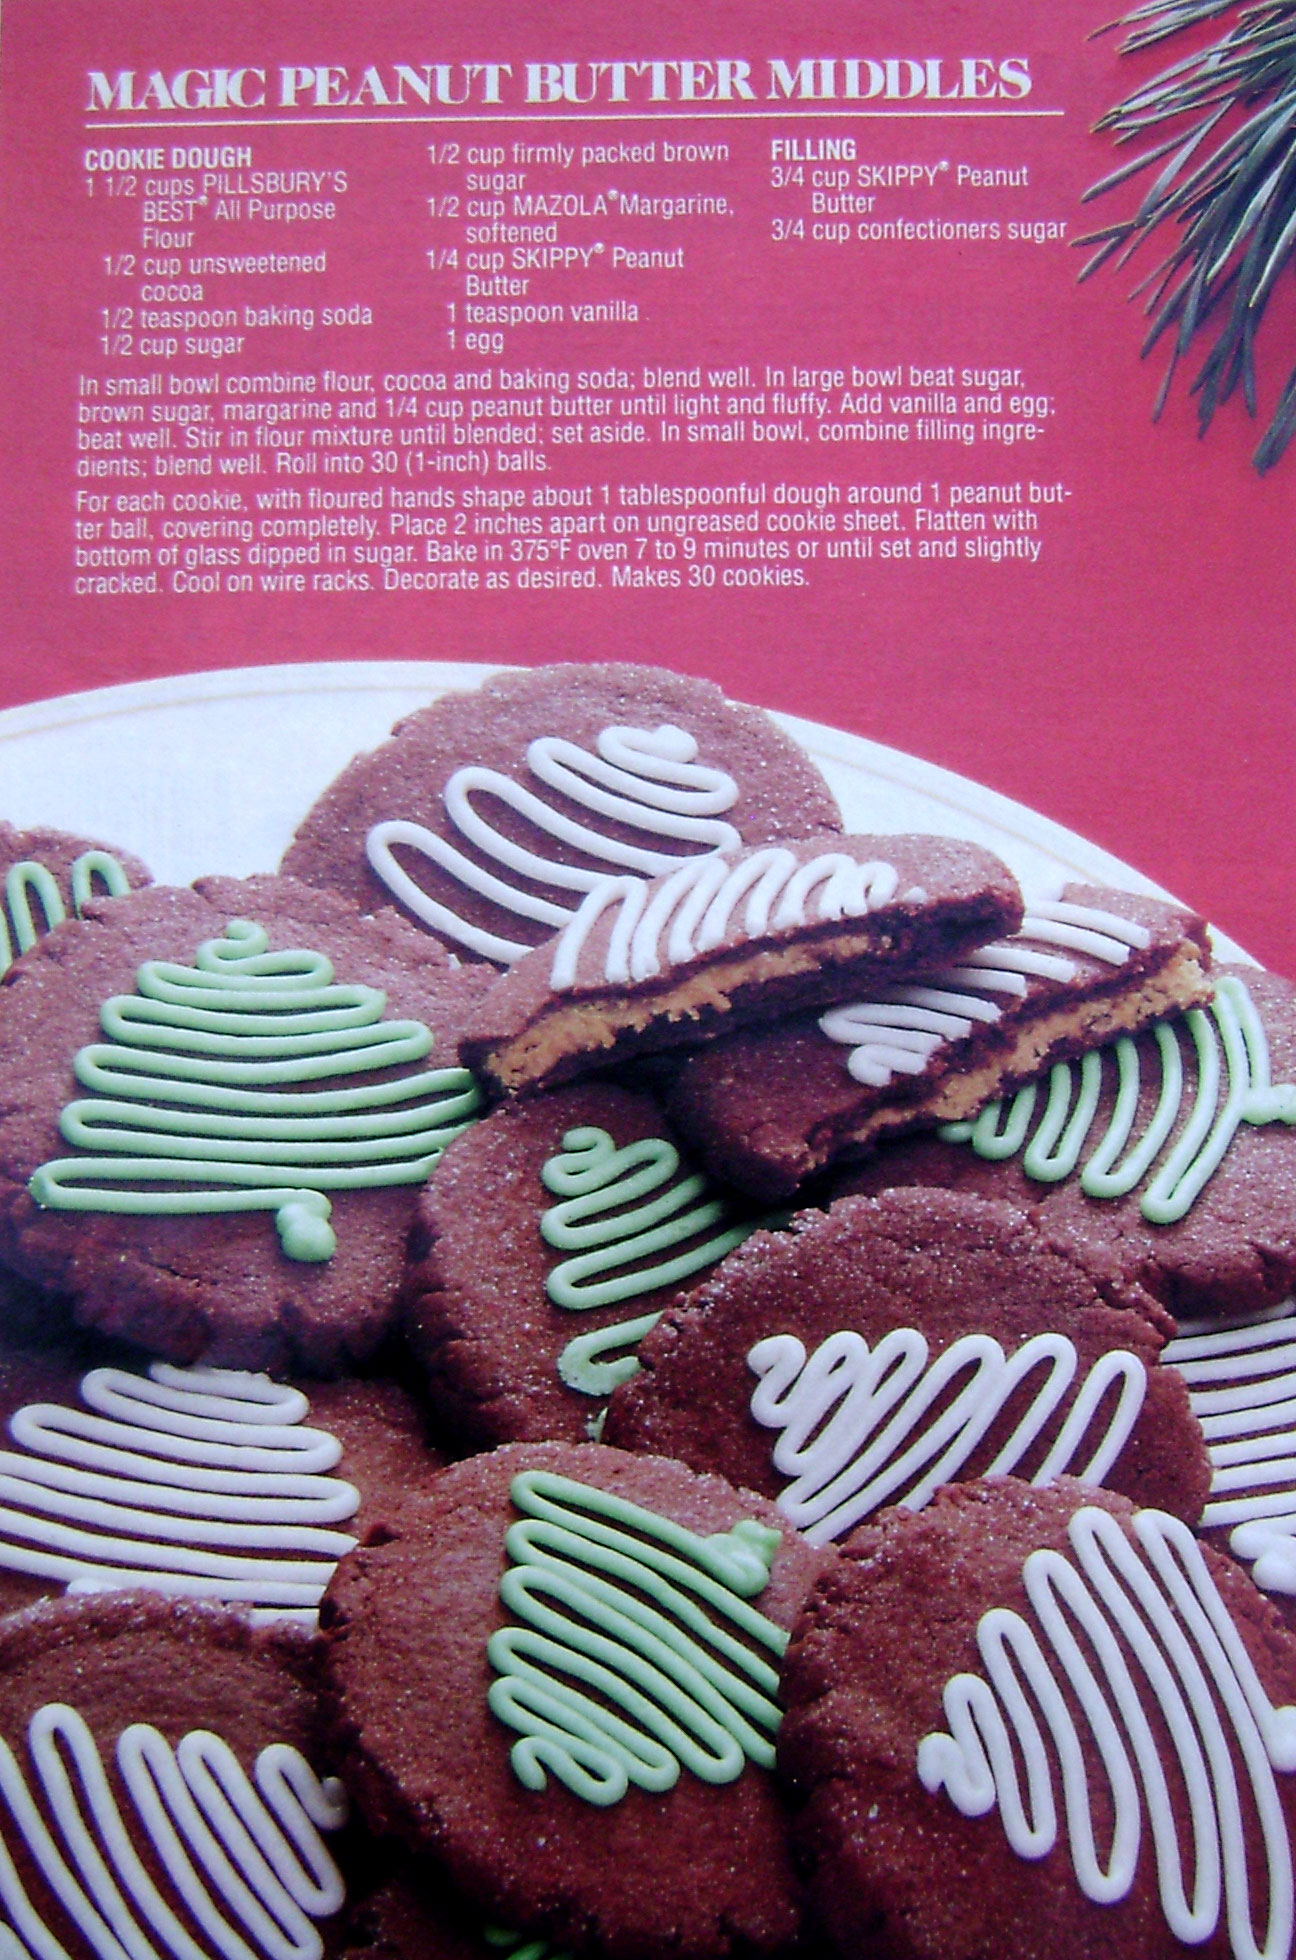 Magazine clipping of Magic Peanut Butter Middles Cookie recipe